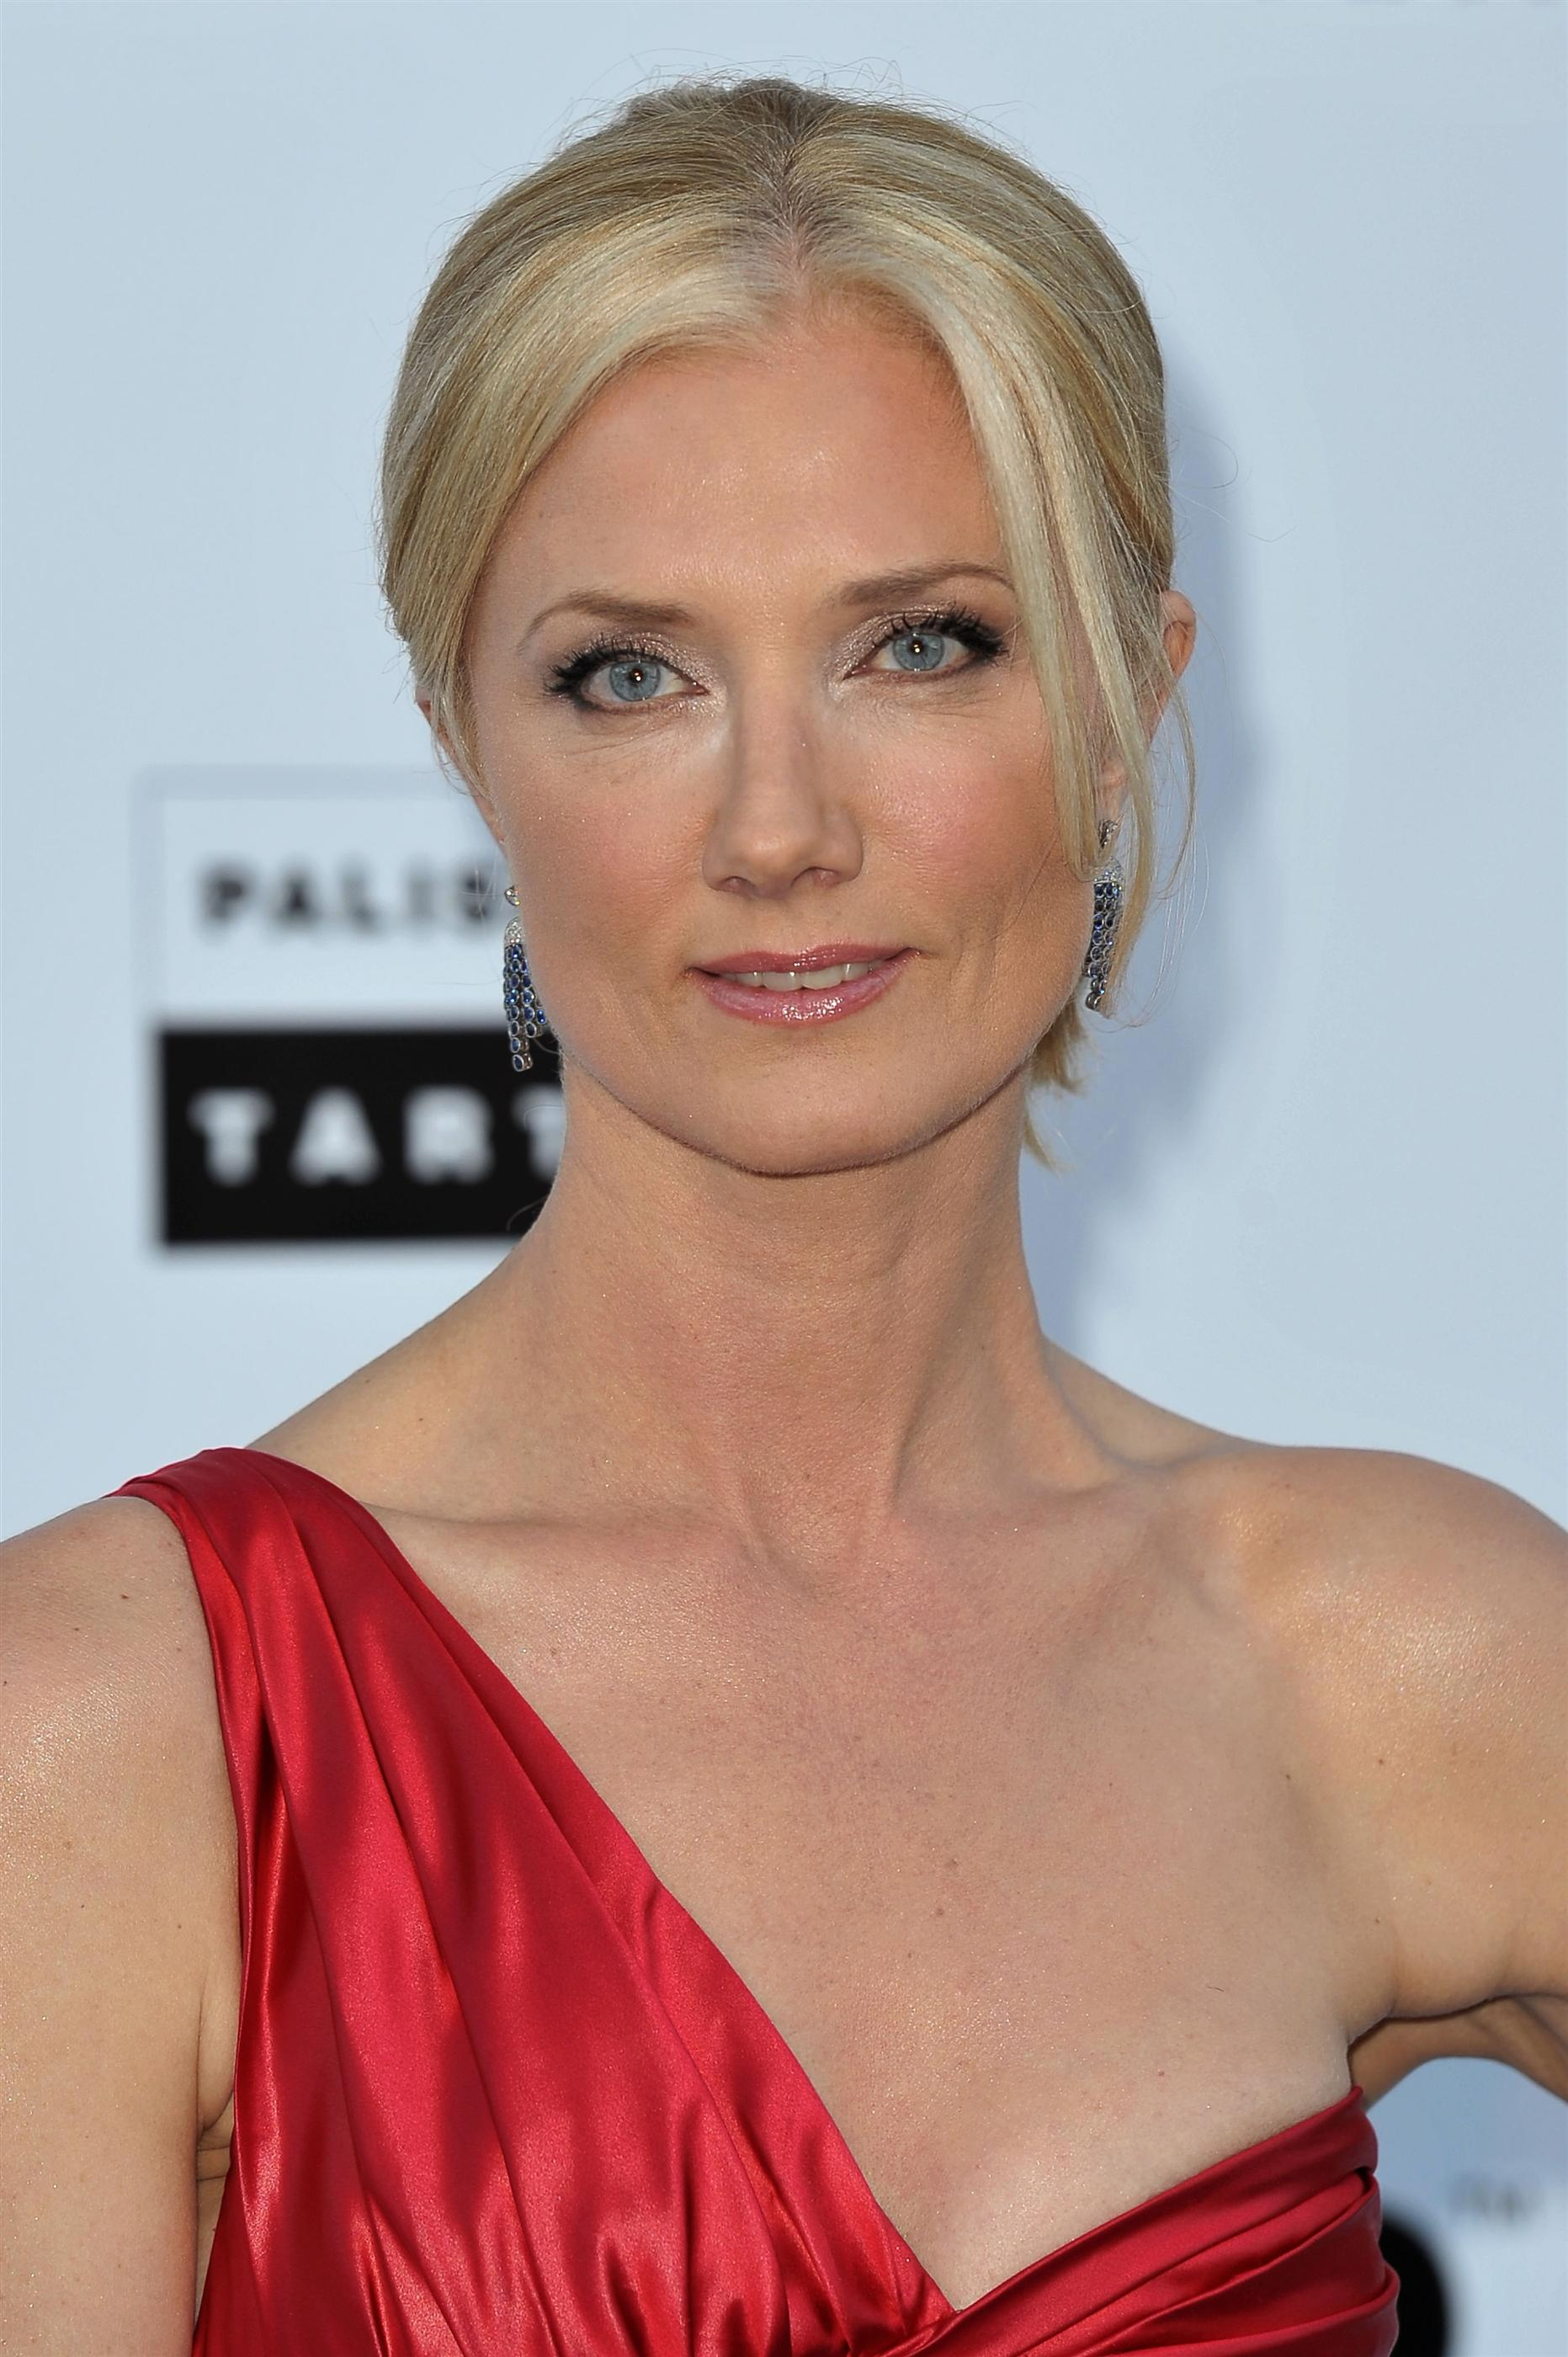 The 53-year old daughter of father Tony Richardson and mother Vanessa Redgrave, 178 cm tall Joely Richardson in 2018 photo